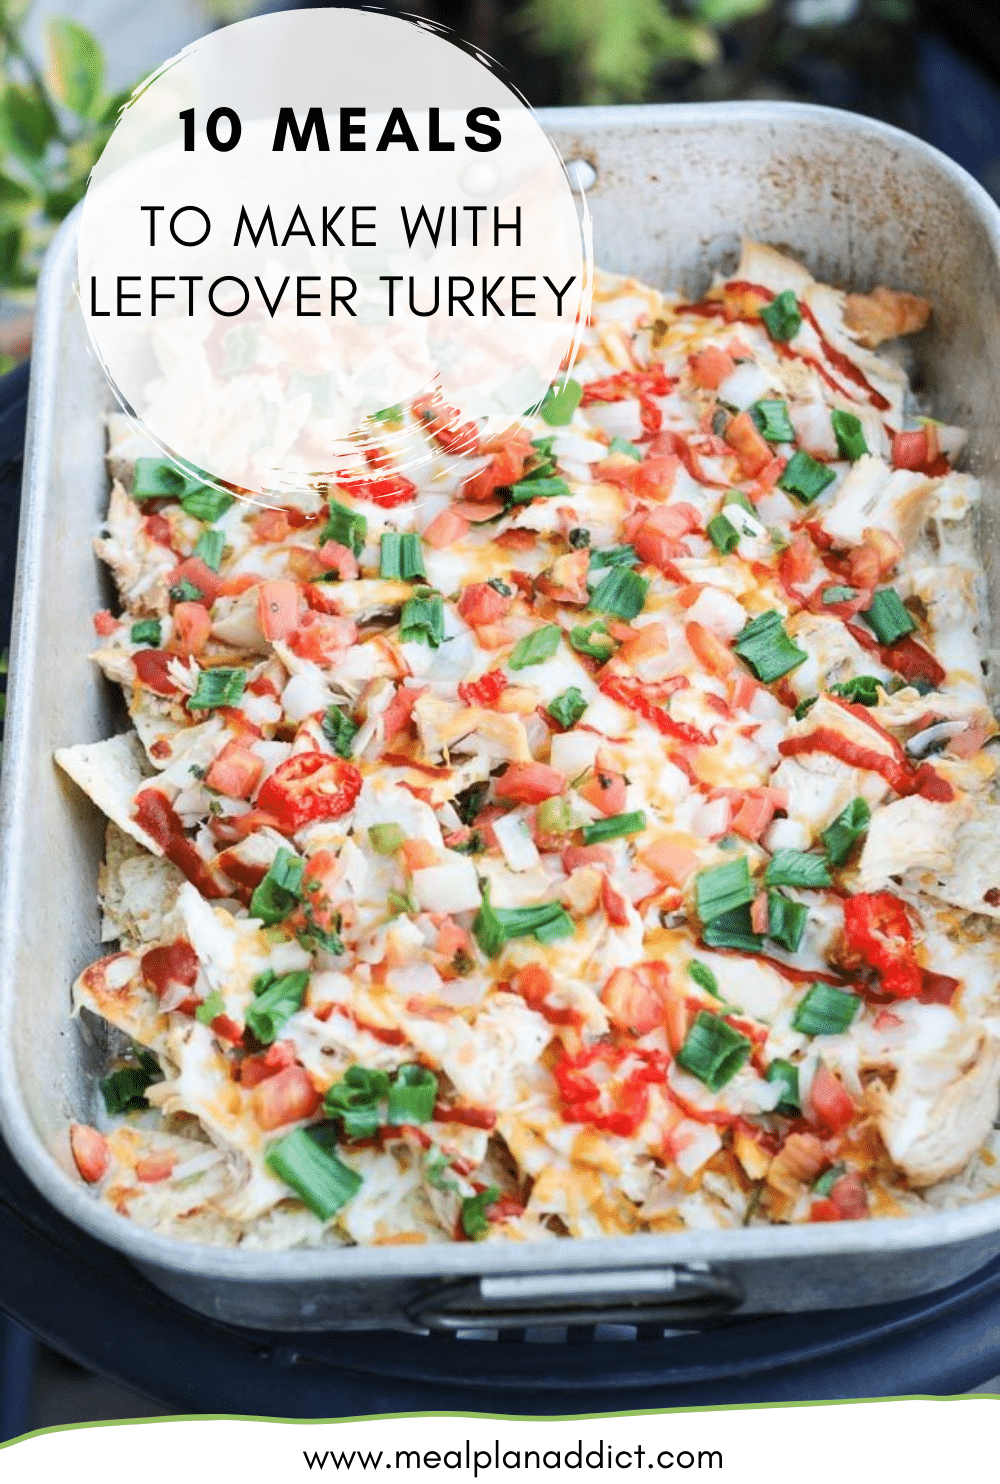 10 Meals to make with leftover turkey